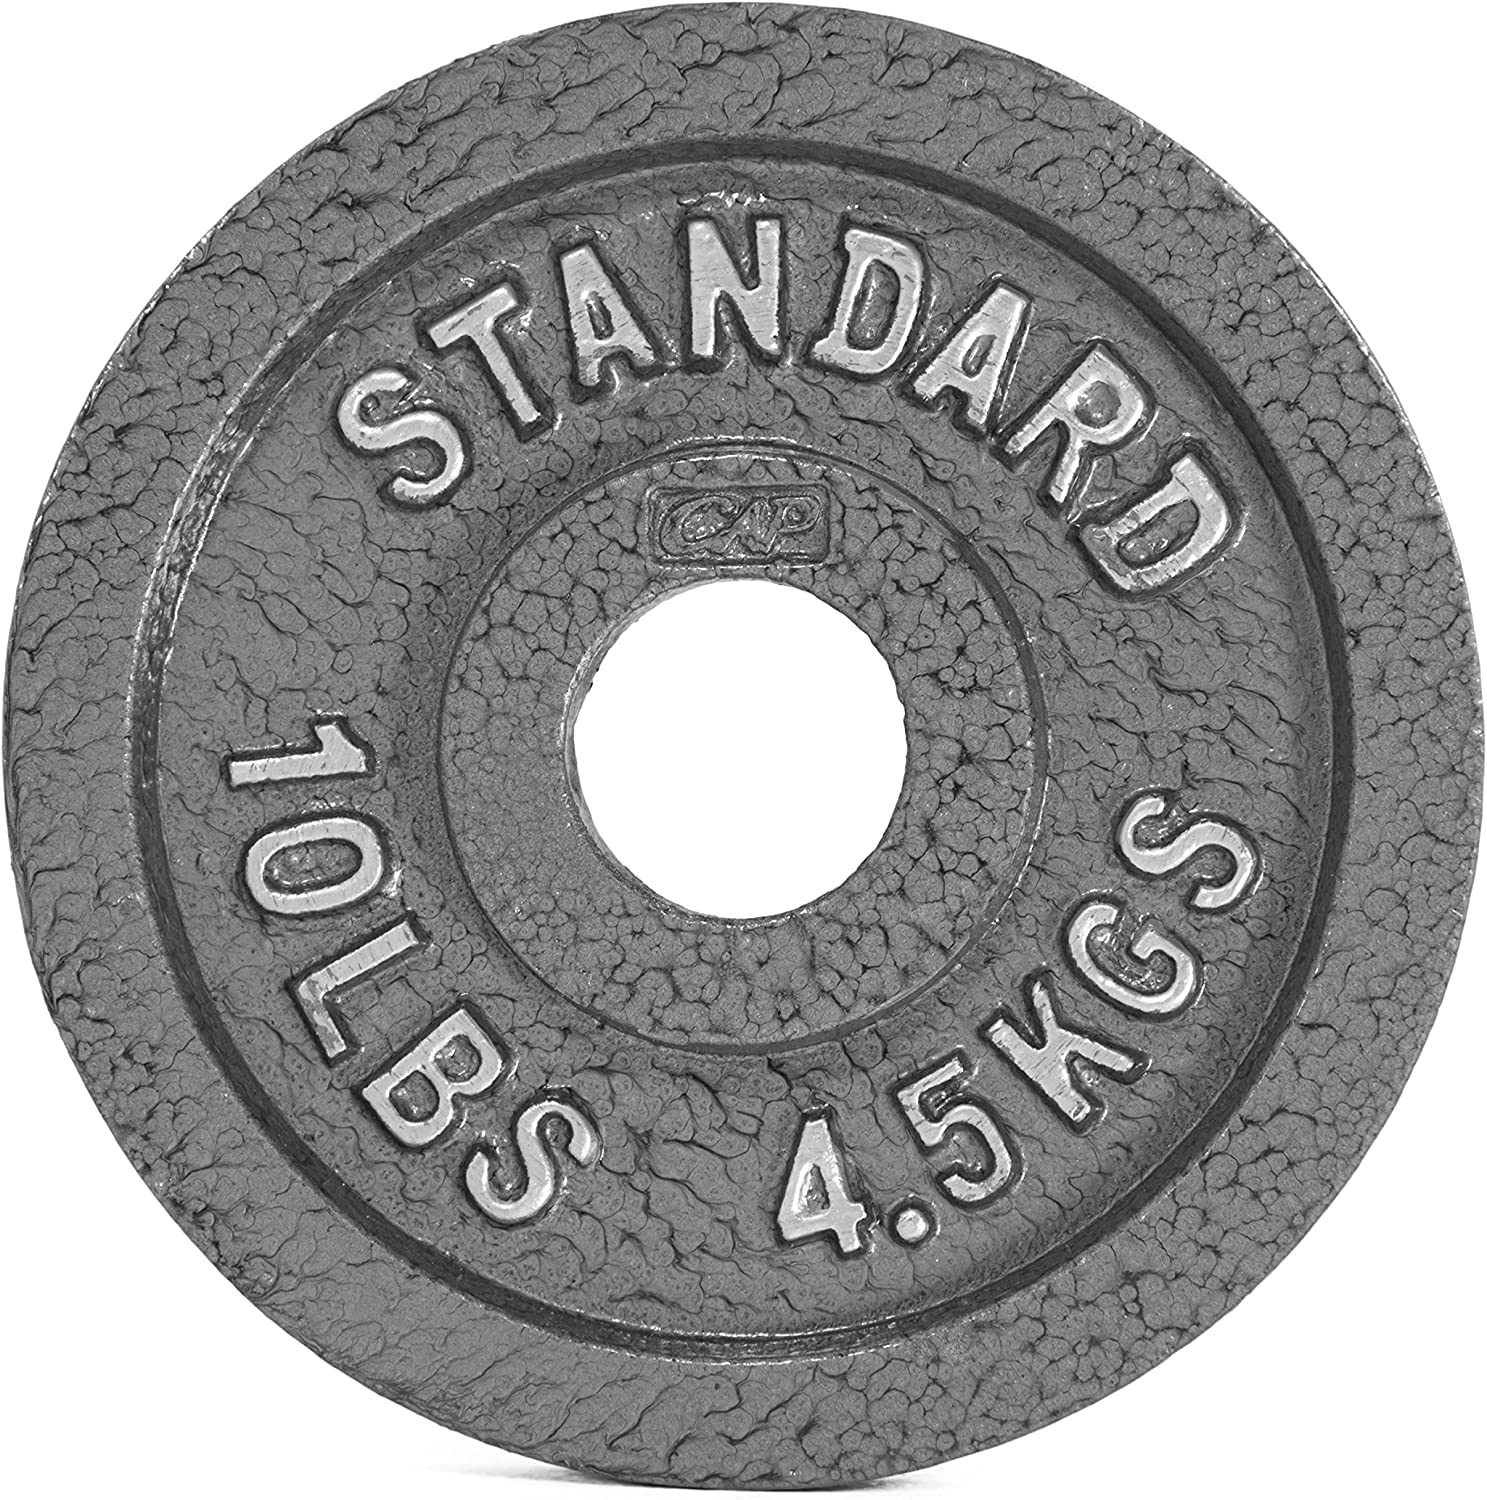 """10lbs Total 4*2.5lb New Standard Barbell Olympic 2/"""" Hole Weights High quality!"""